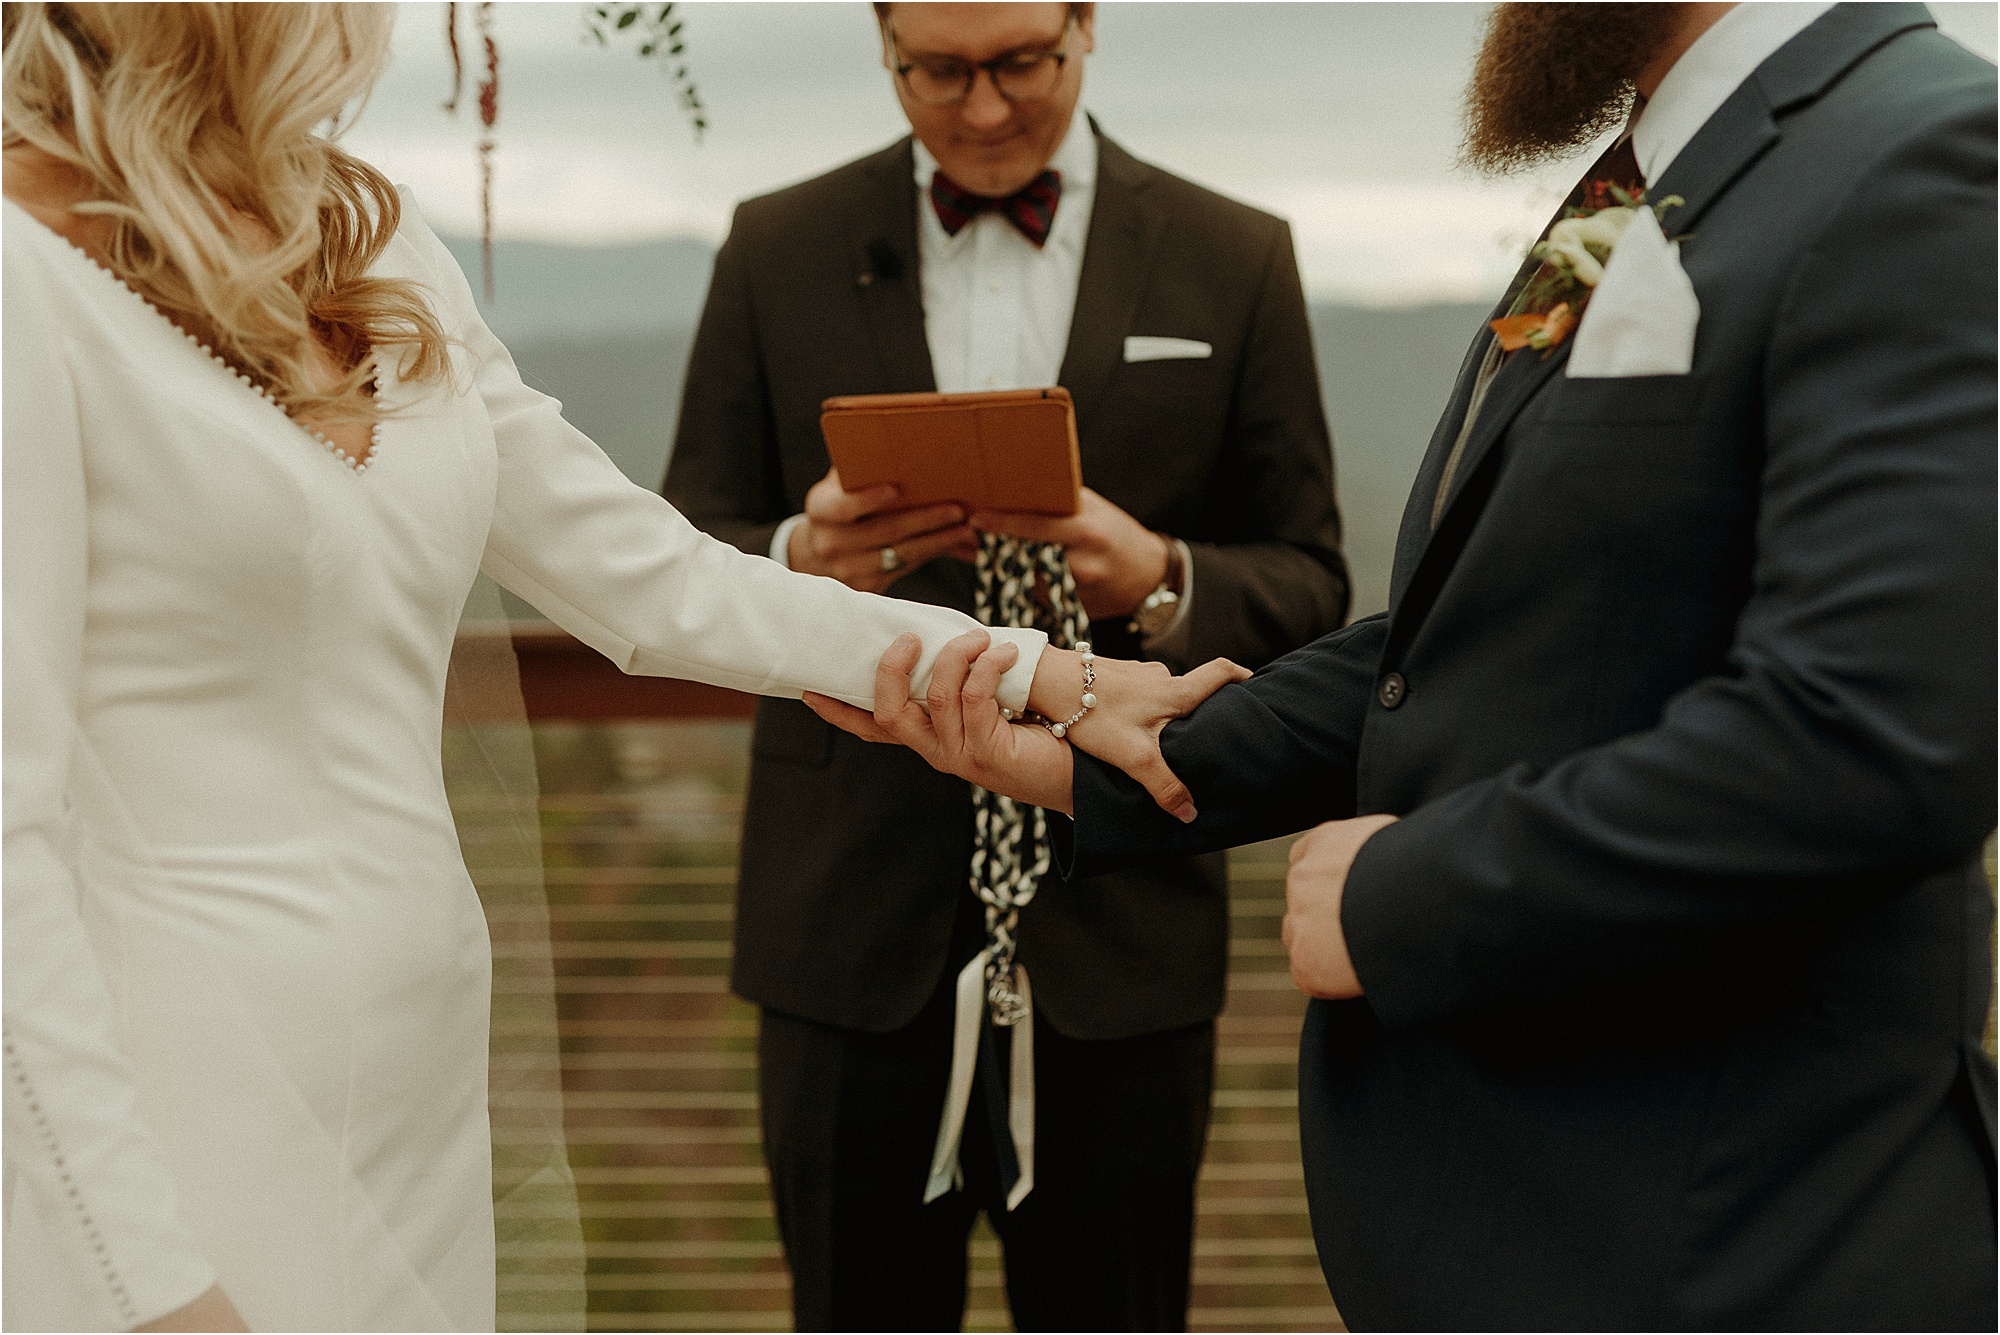 knot-tying ceremony at wedding